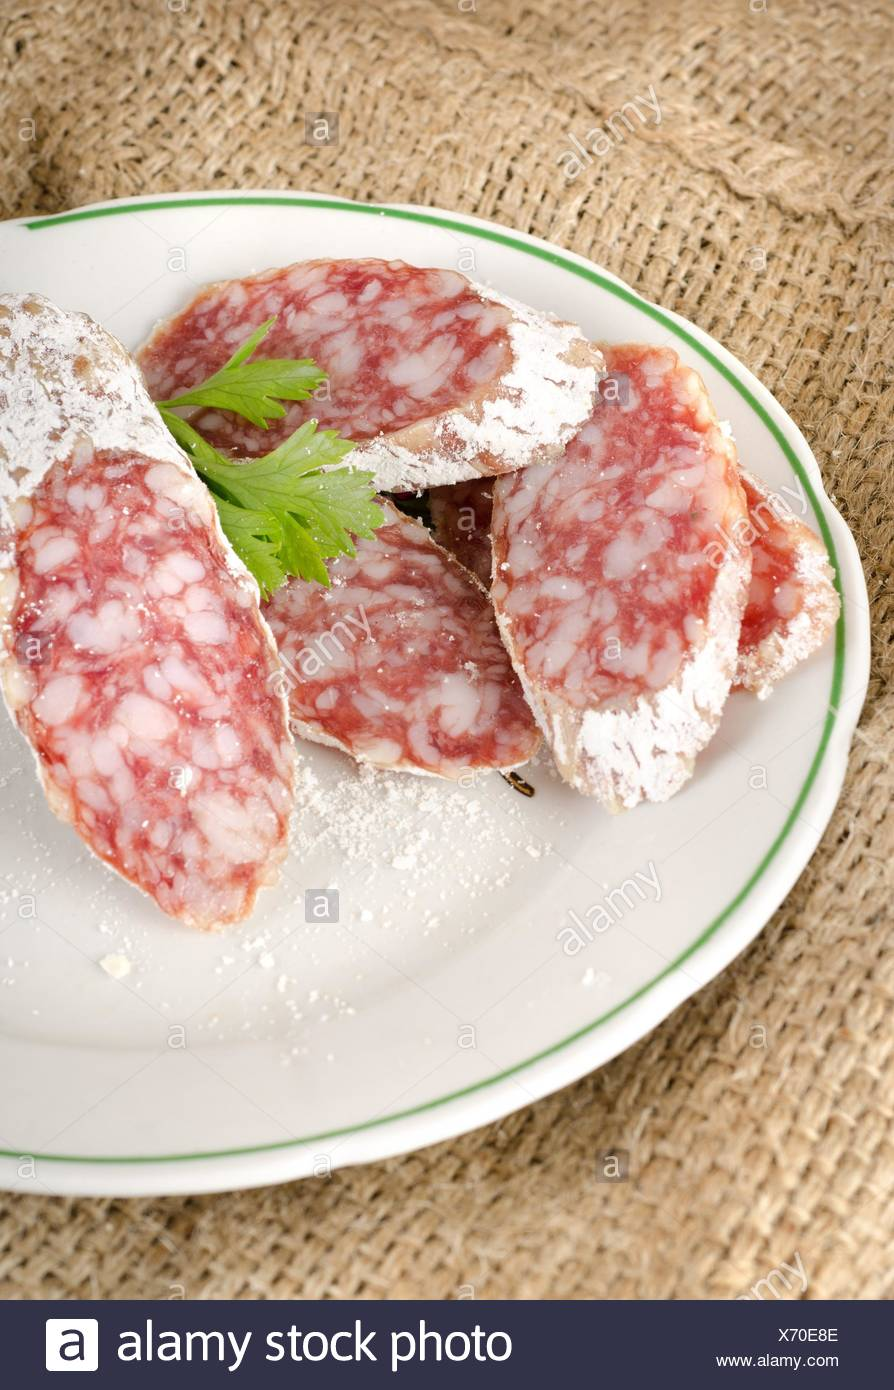 Sausage on a plate on the fabric. - Stock Image